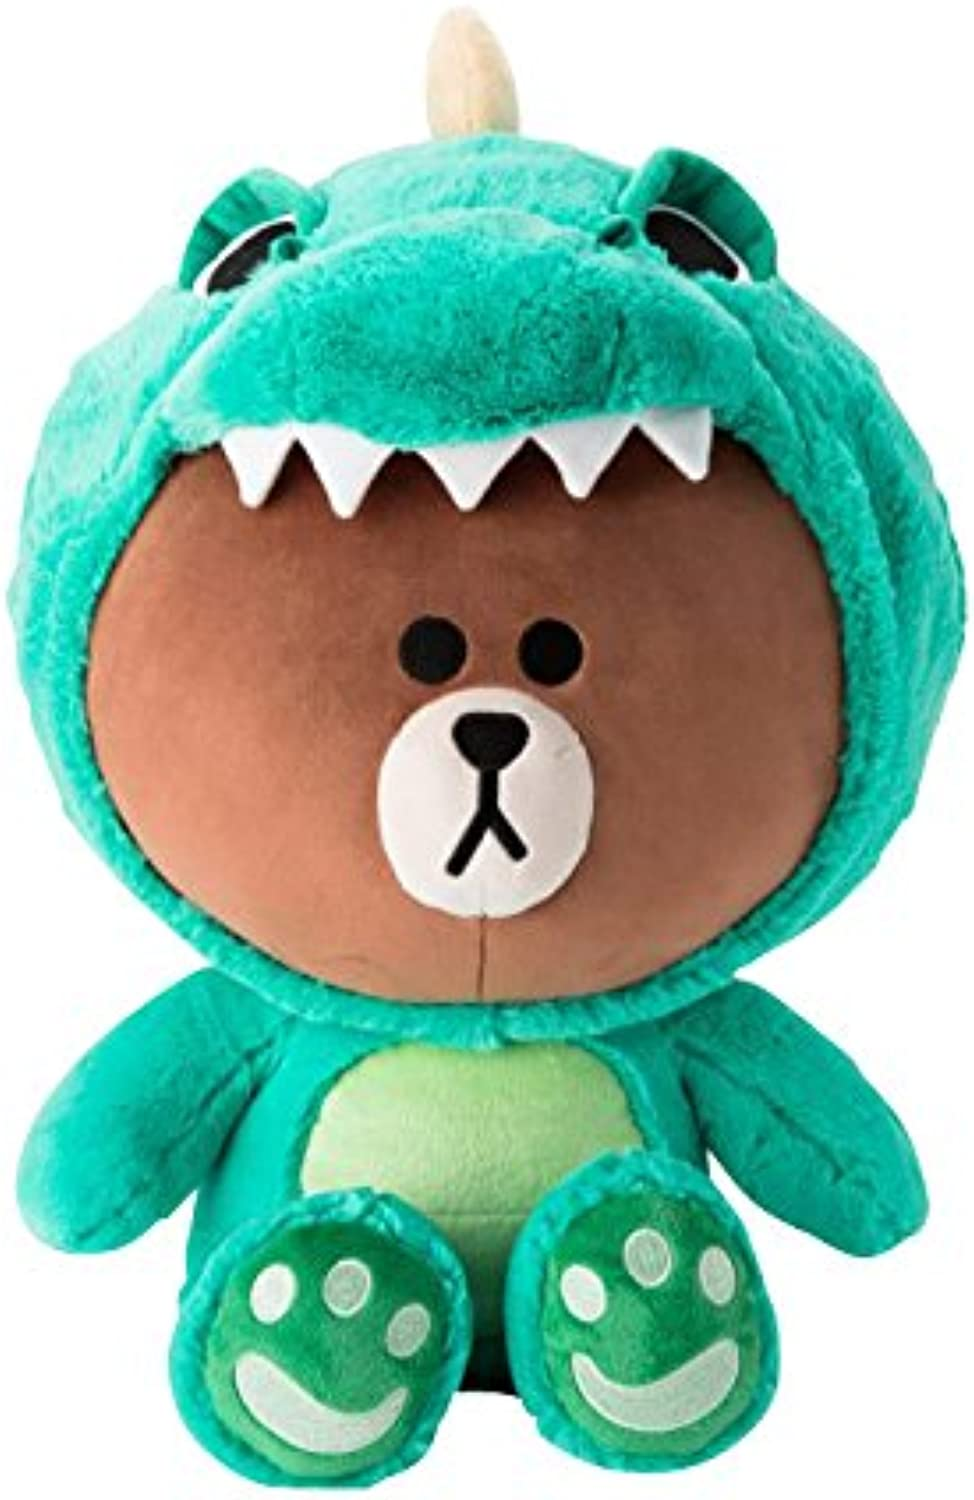 LINE FRIENDS Plush Figure  Dino Brown Character Cute Soft Sitting Stuffed Doll, 18 Inches